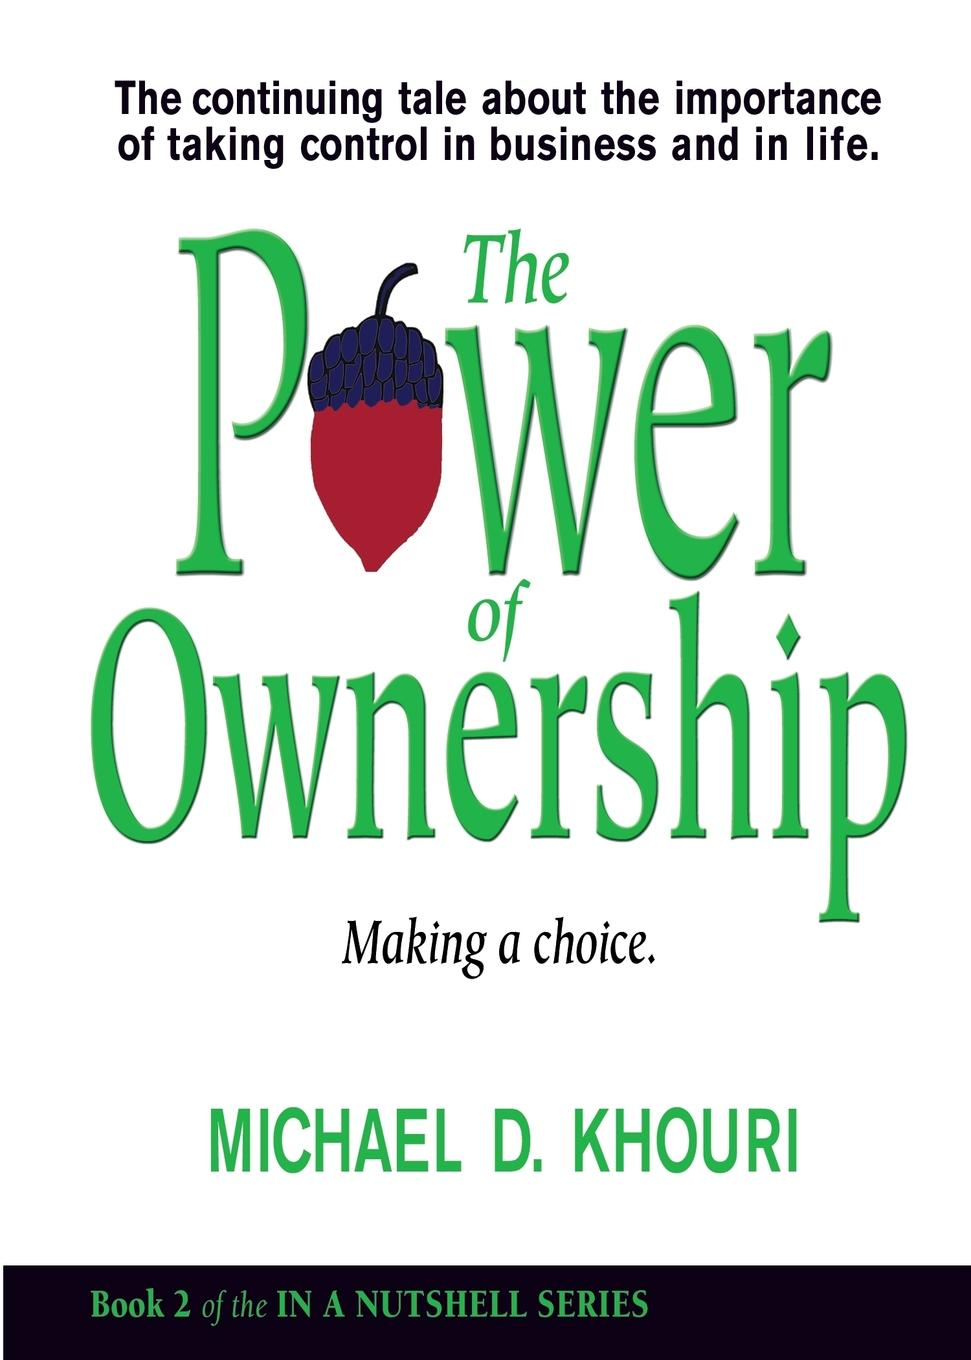 The Power of Ownership. Making a Choice: The continuing tale about the importance of taking ownership in business and in life. As Michael Khouri's allegory continues, the three squirrels from...